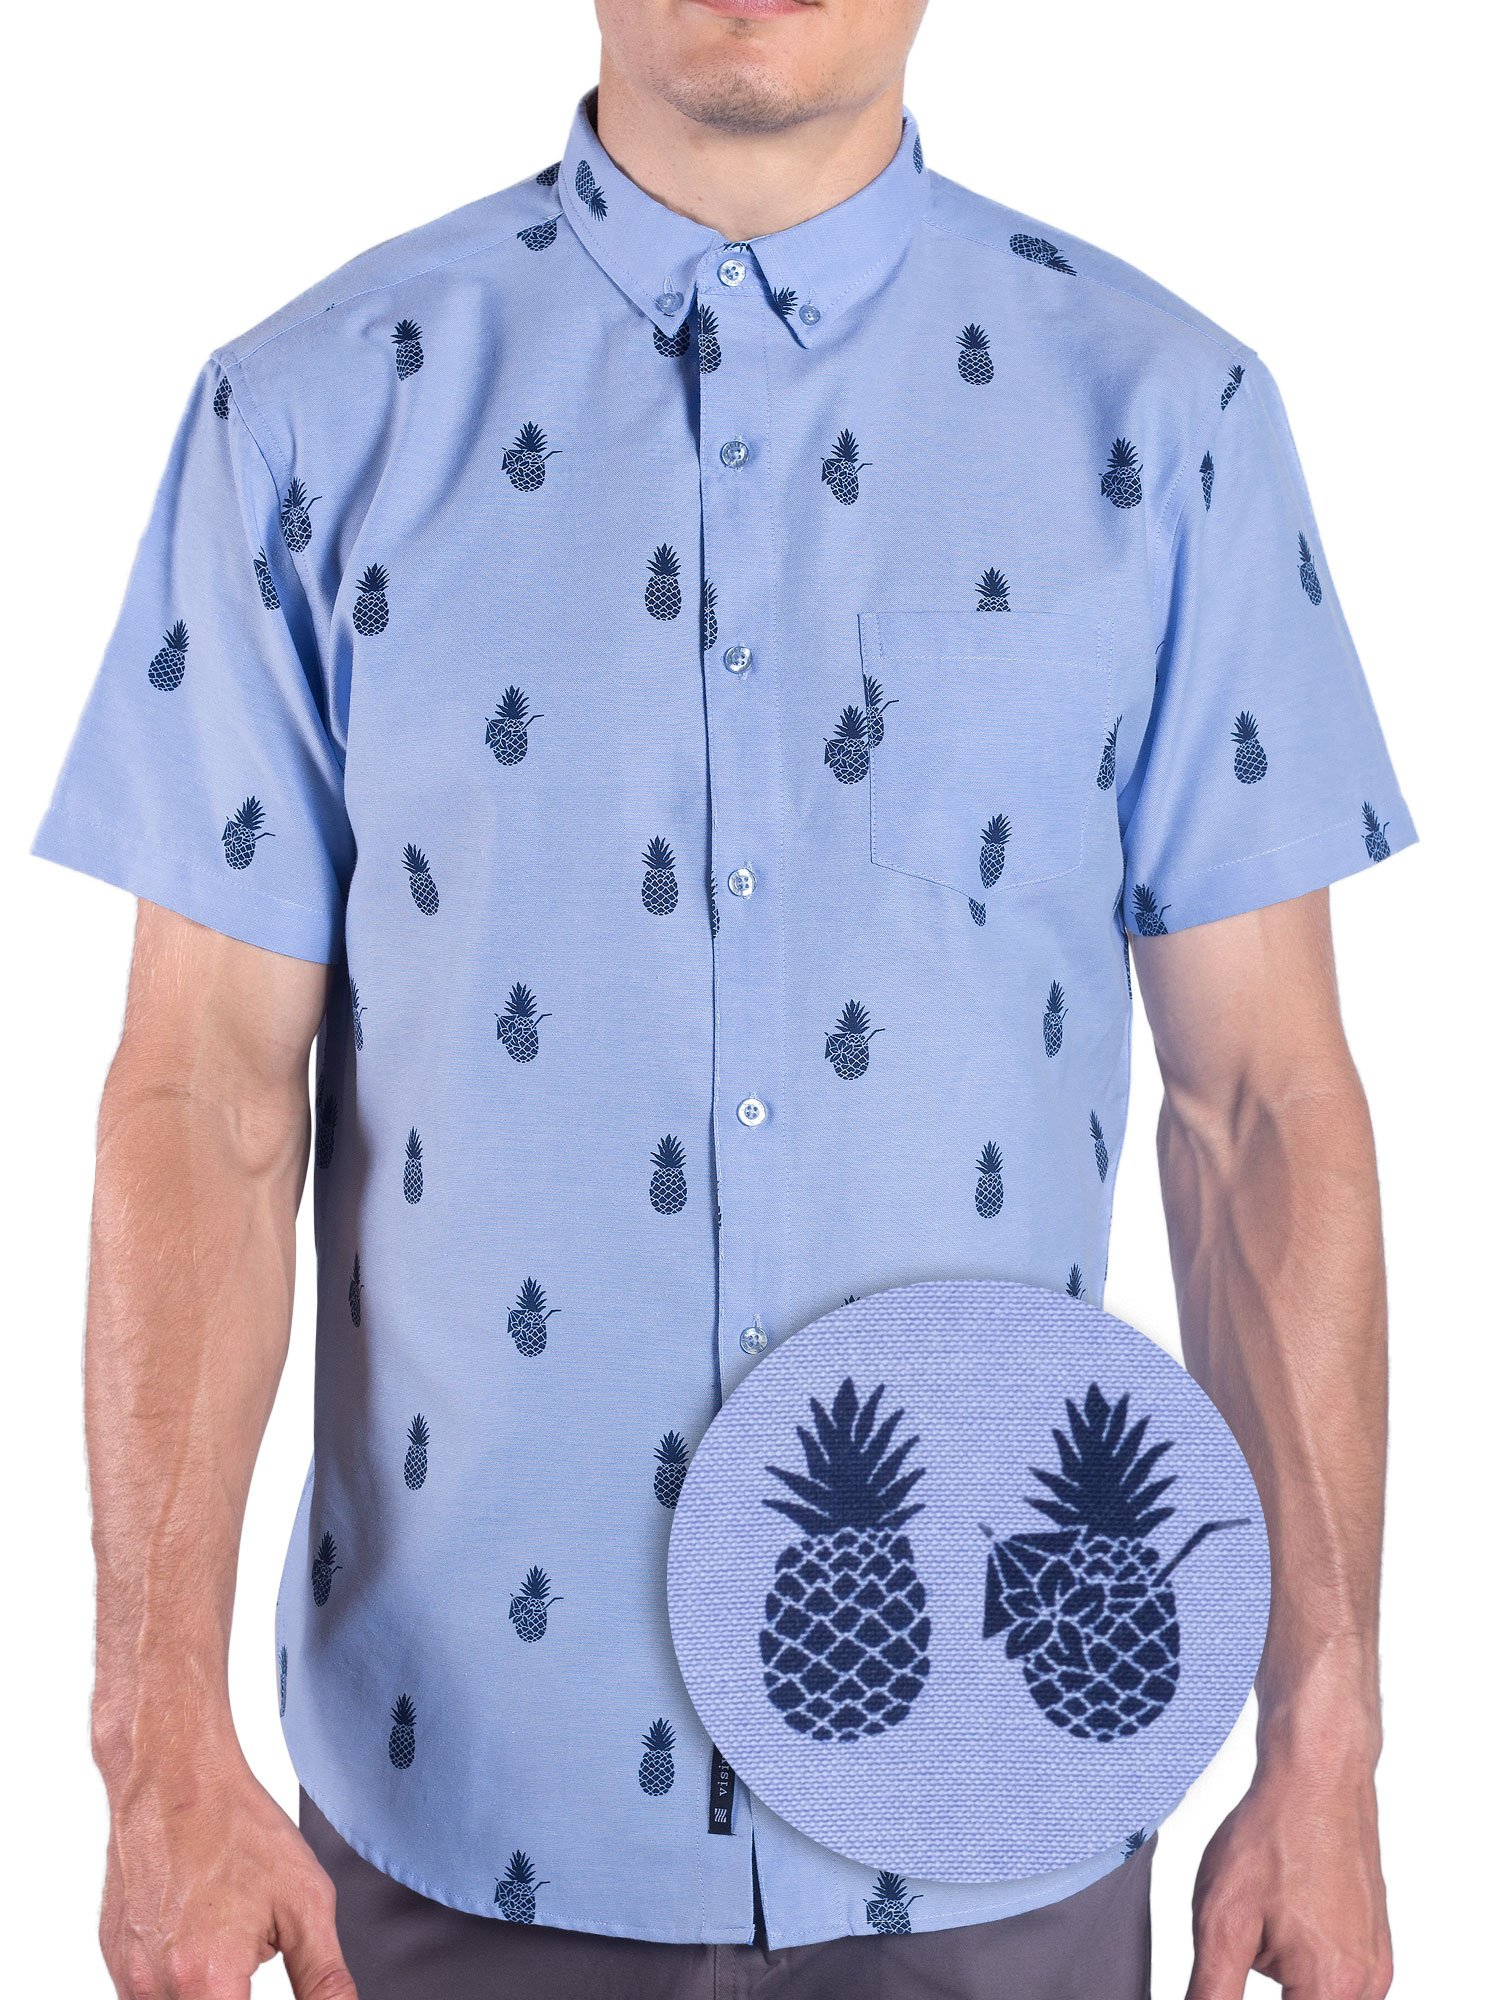 Visive Printed Hawaiian Pineapple Oxford Short Sleeve Button Up Shirt S 4XL